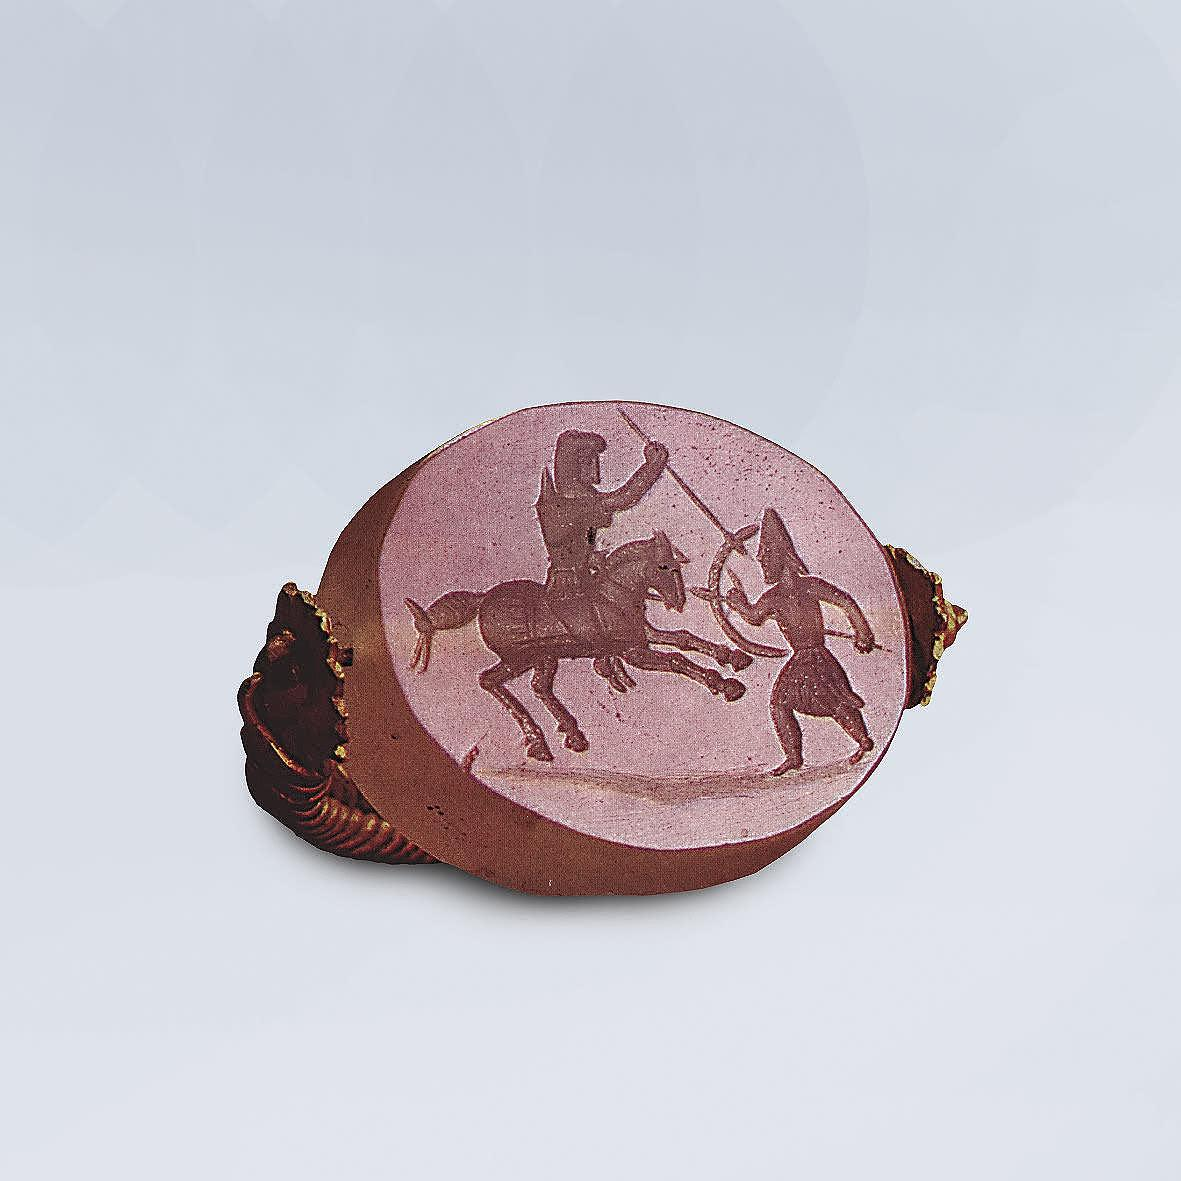 Chalcedony scarabaeoid seal: Persian Horseman Slaying a Hoplite with a Spear, First half of the 4th century BC, ?